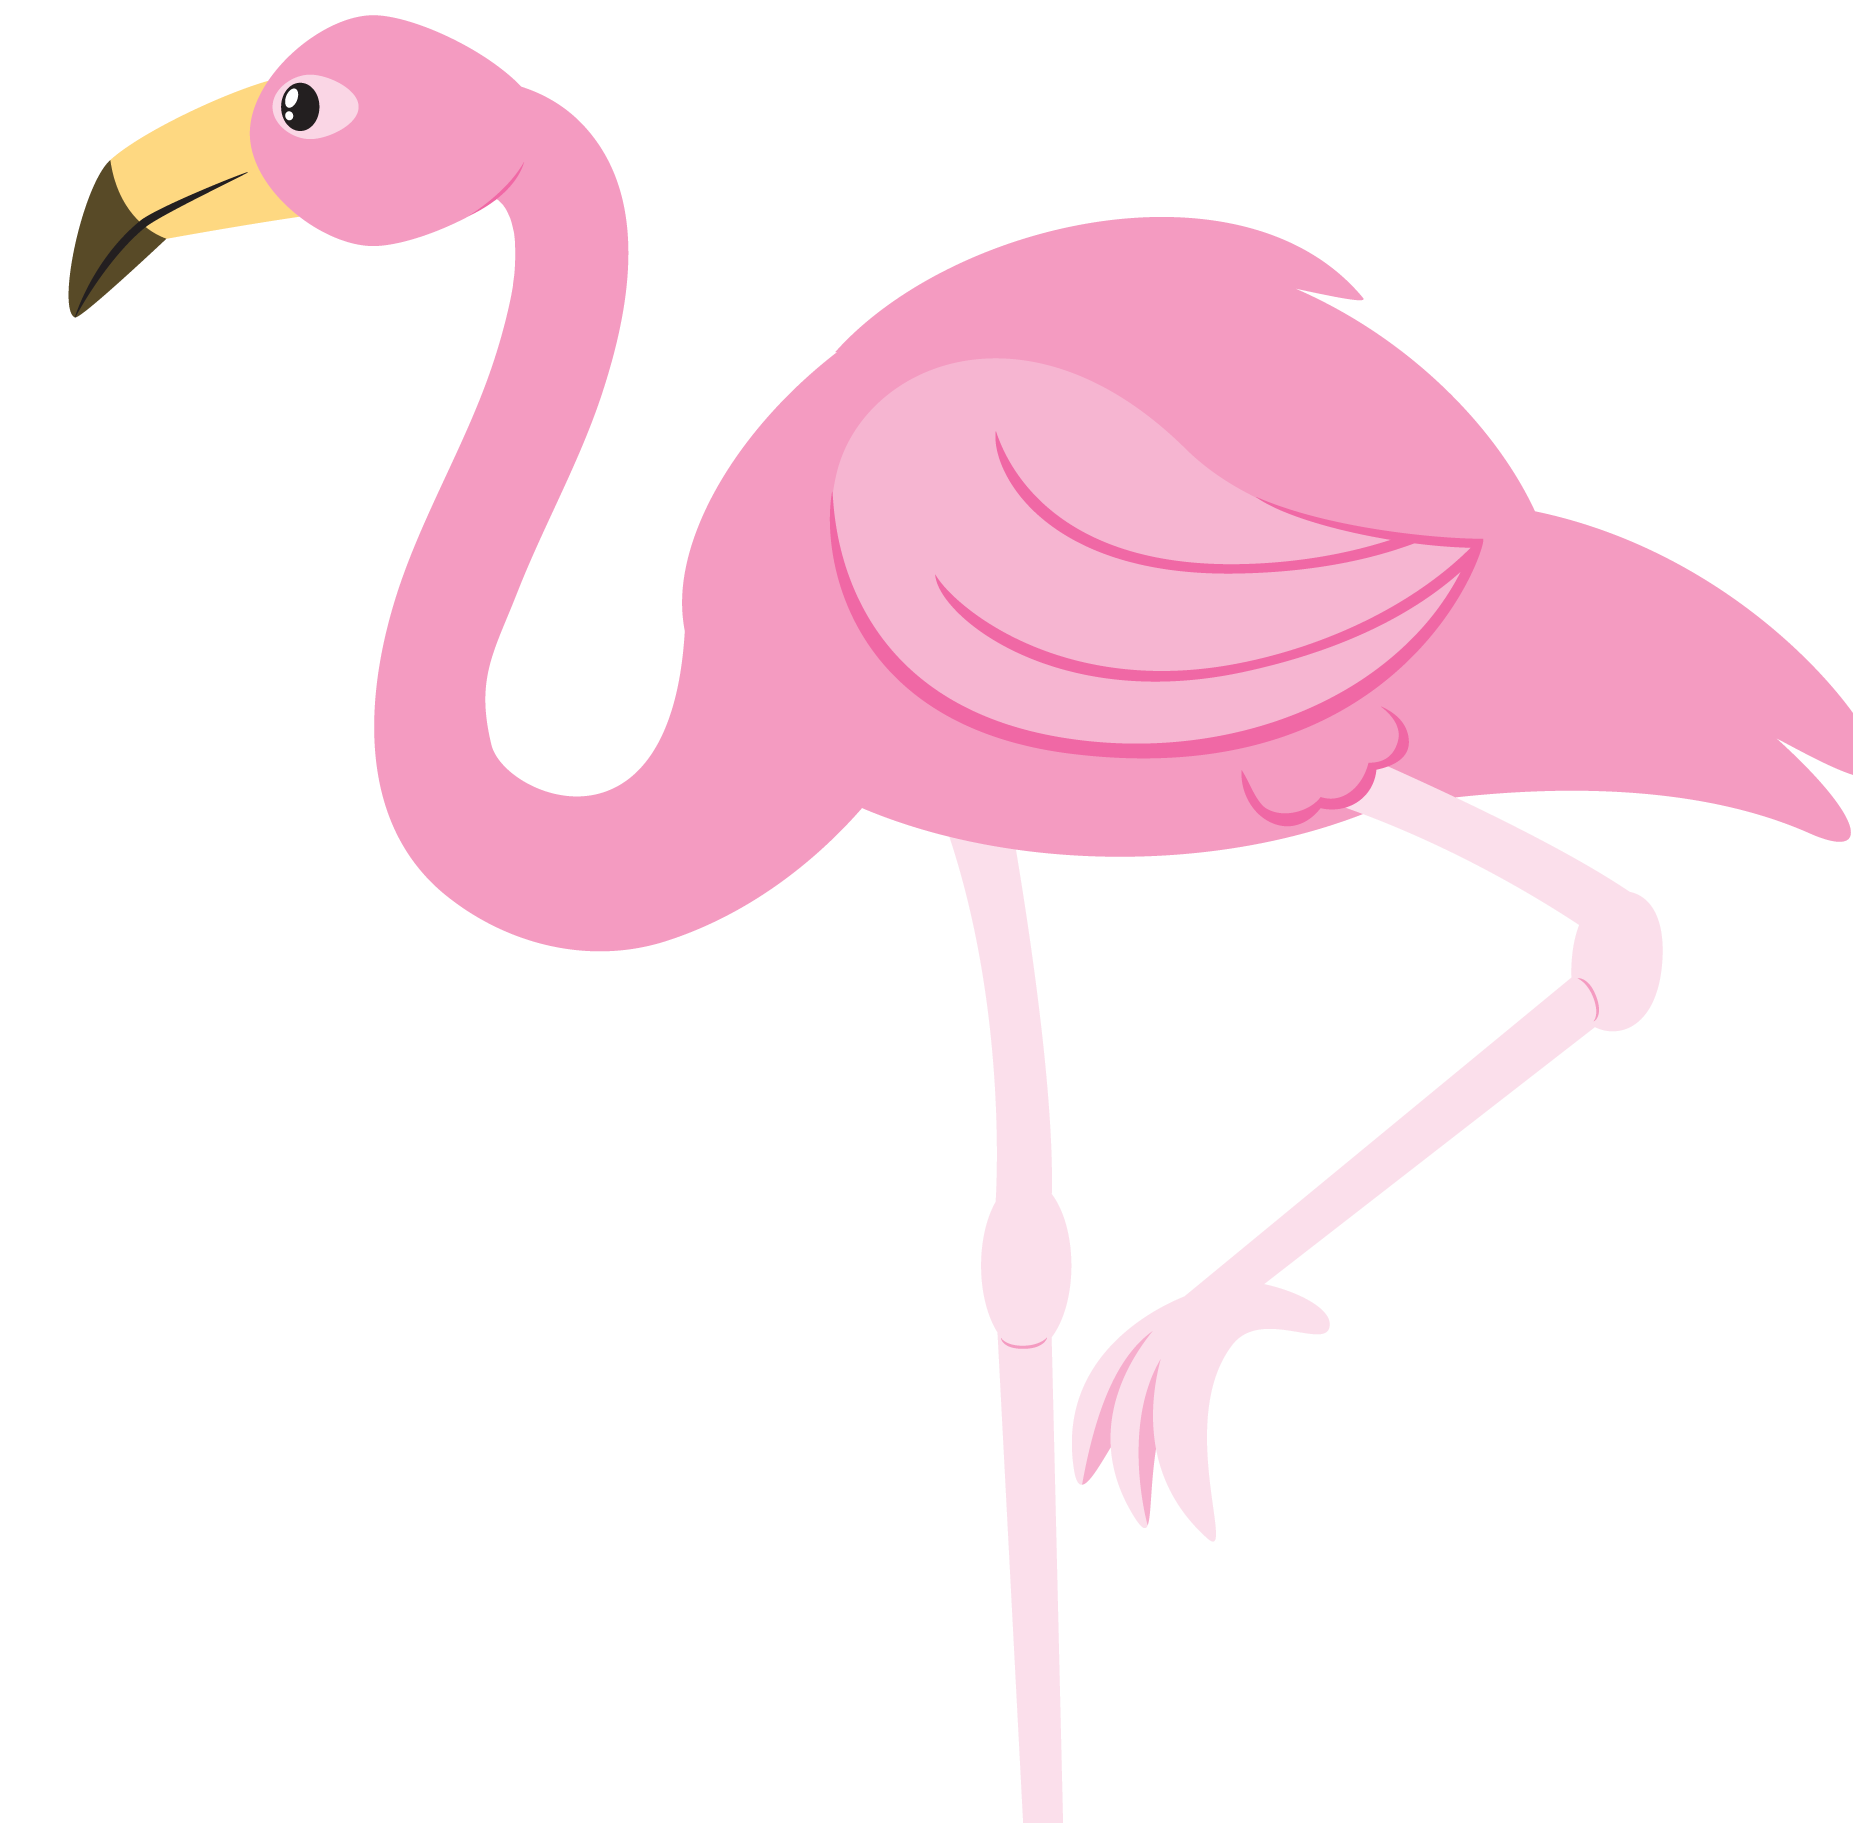 flamingo clip art saferbrowser yahoo image search results pool rh pinterest com flamingo clip art images flamingo clipart